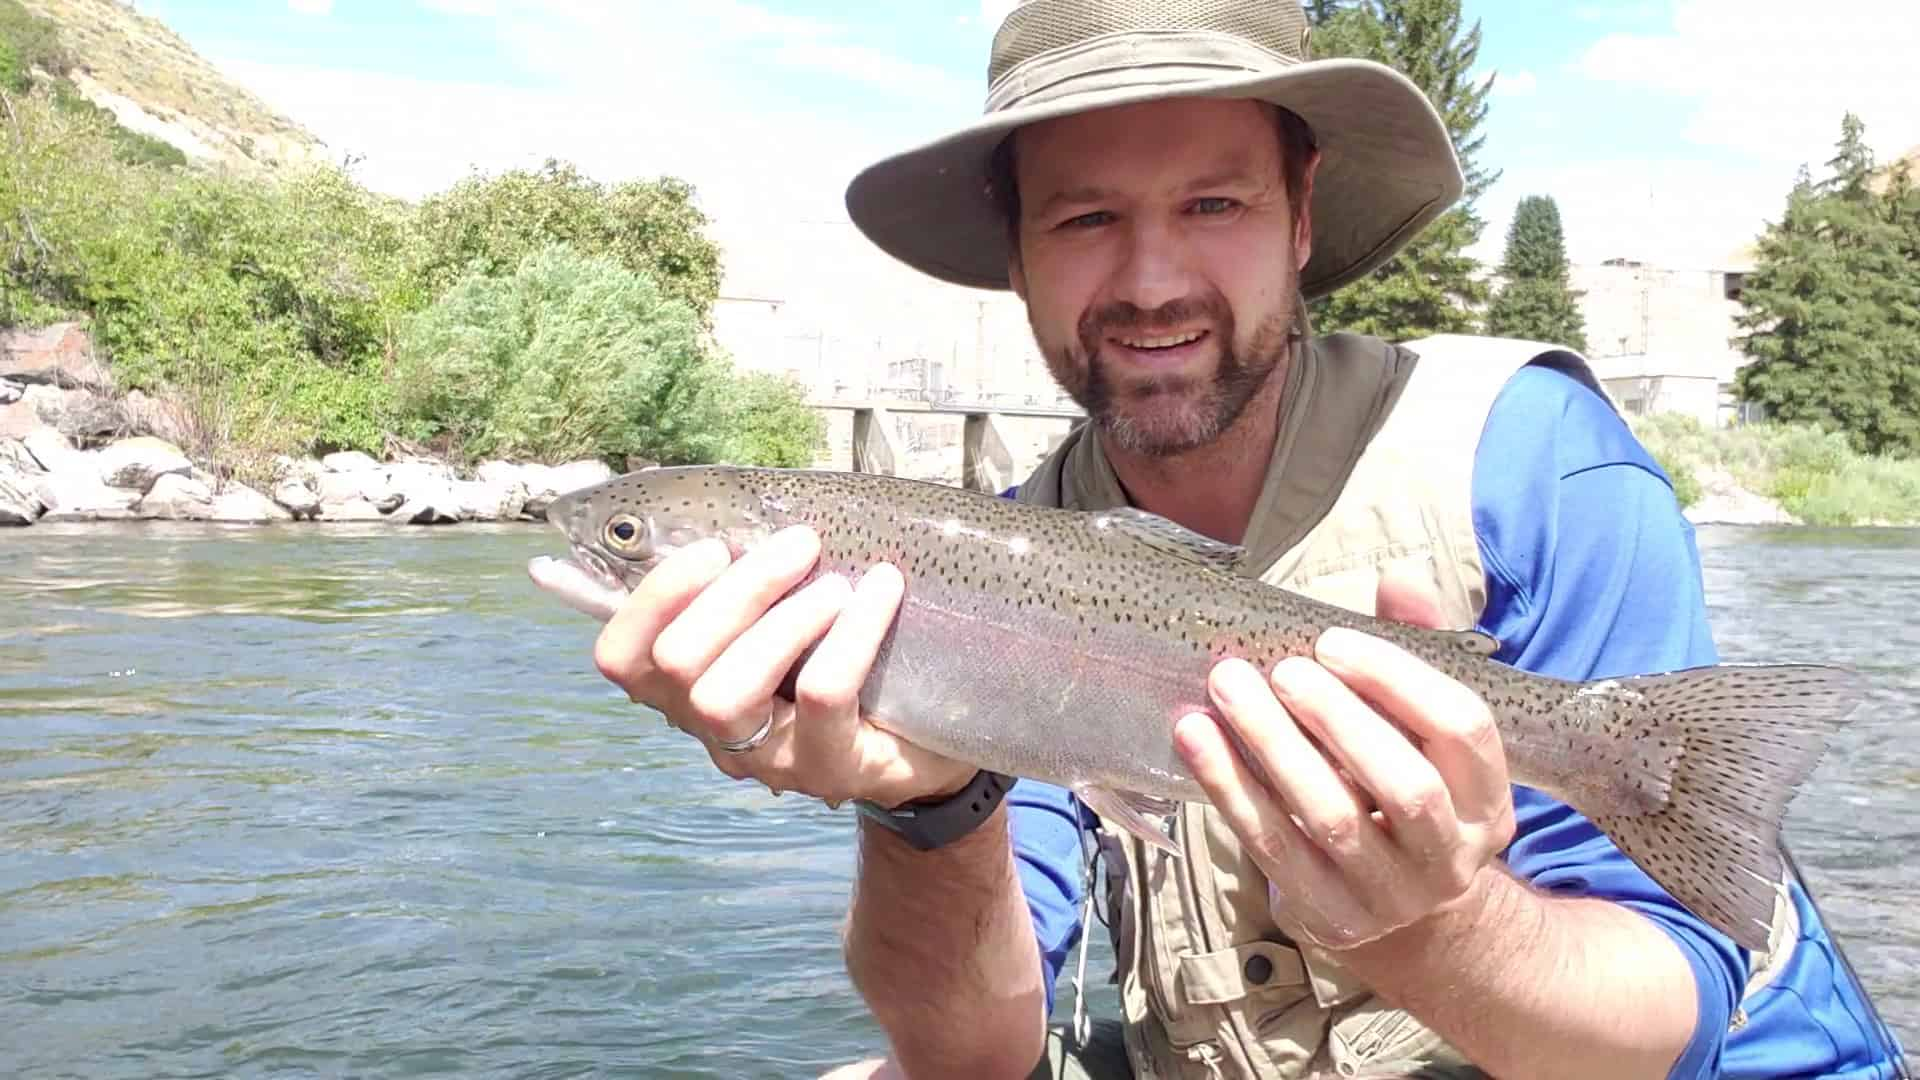 Spin Trout Fishing the Provo River with A Fly Fishing Setup